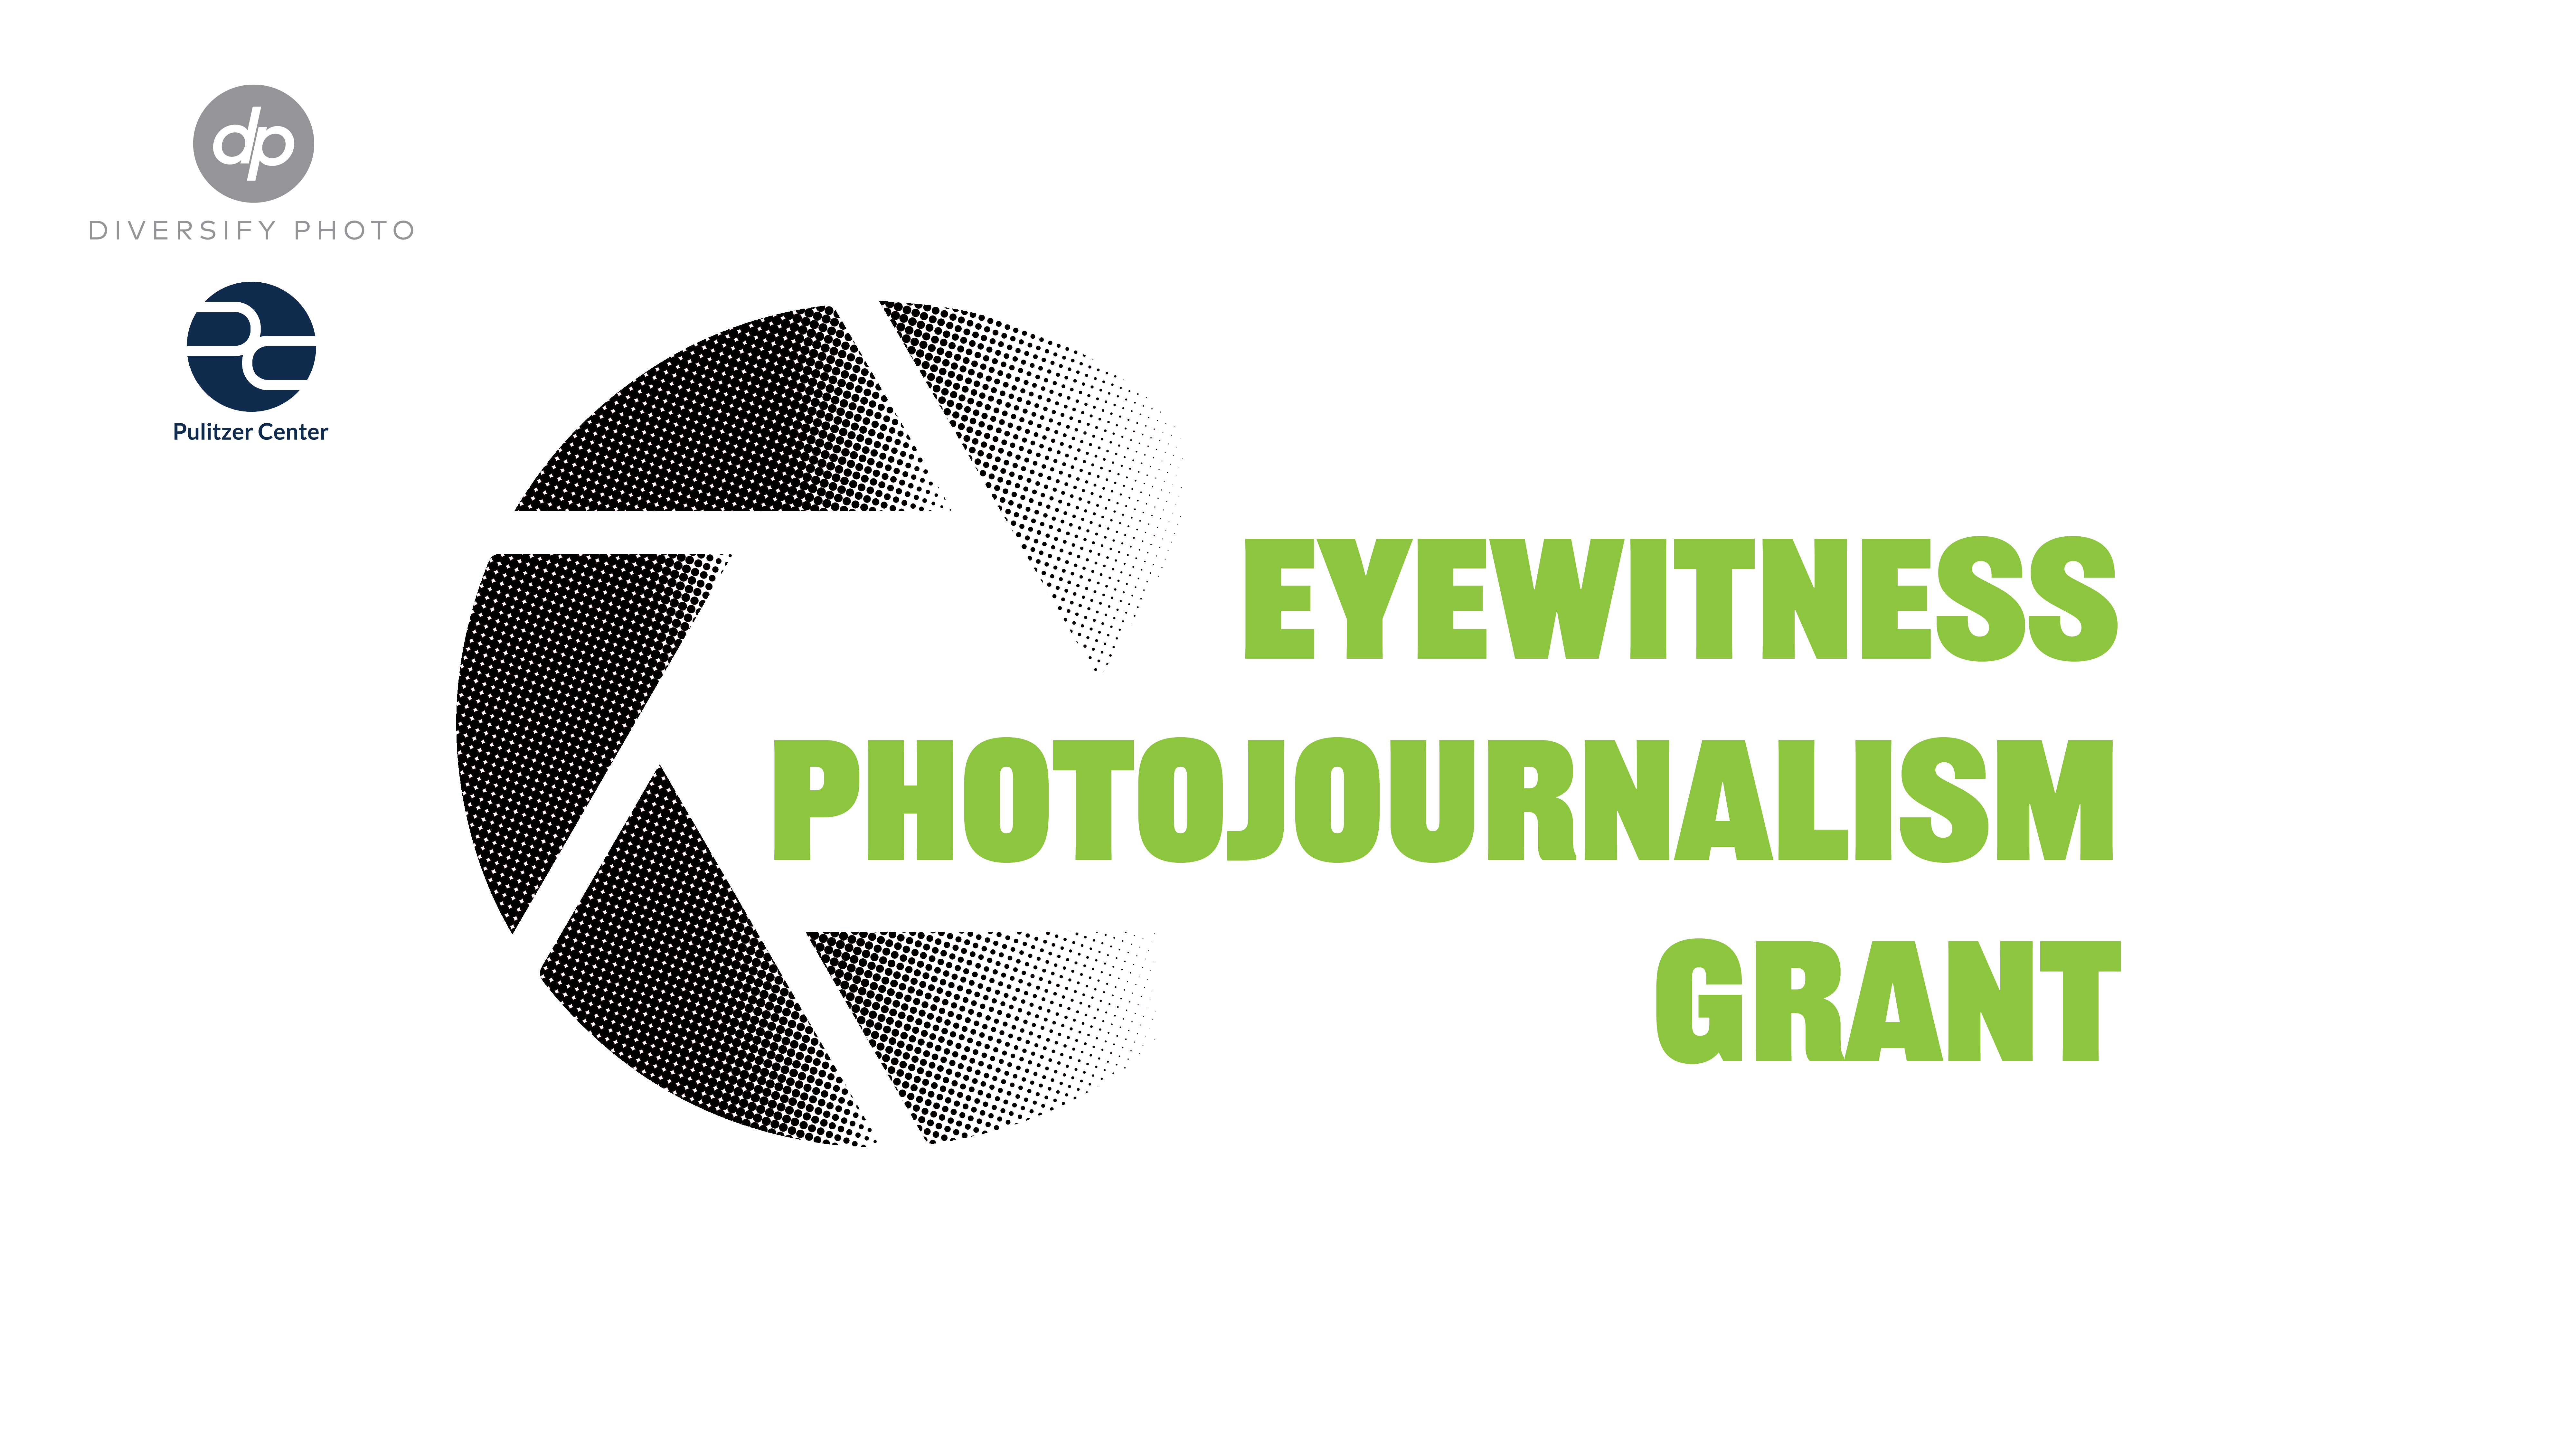 The Eyewitness Photojournalism Grant. Graphic by Lucille Crelli.